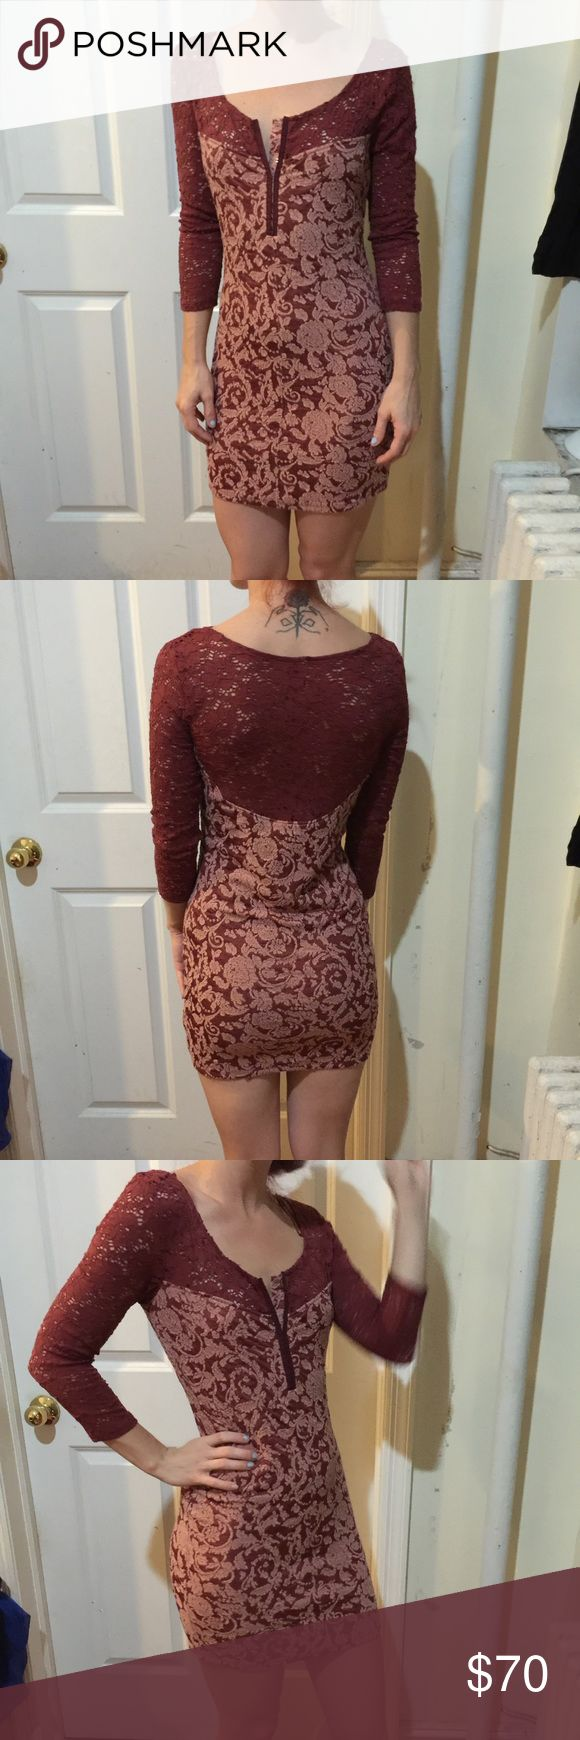 FREE PEOPLE Magic Carpet Crochet Bodycon Dress FREE PEOPLE Magic Carpet Crochet Bodycon Dress in a size small. top has crochet red sleeves and hook and eyes in the middle center. Body is stretchy like and felty fabric. Super soft and worn twice. Free People Dresses Long Sleeve